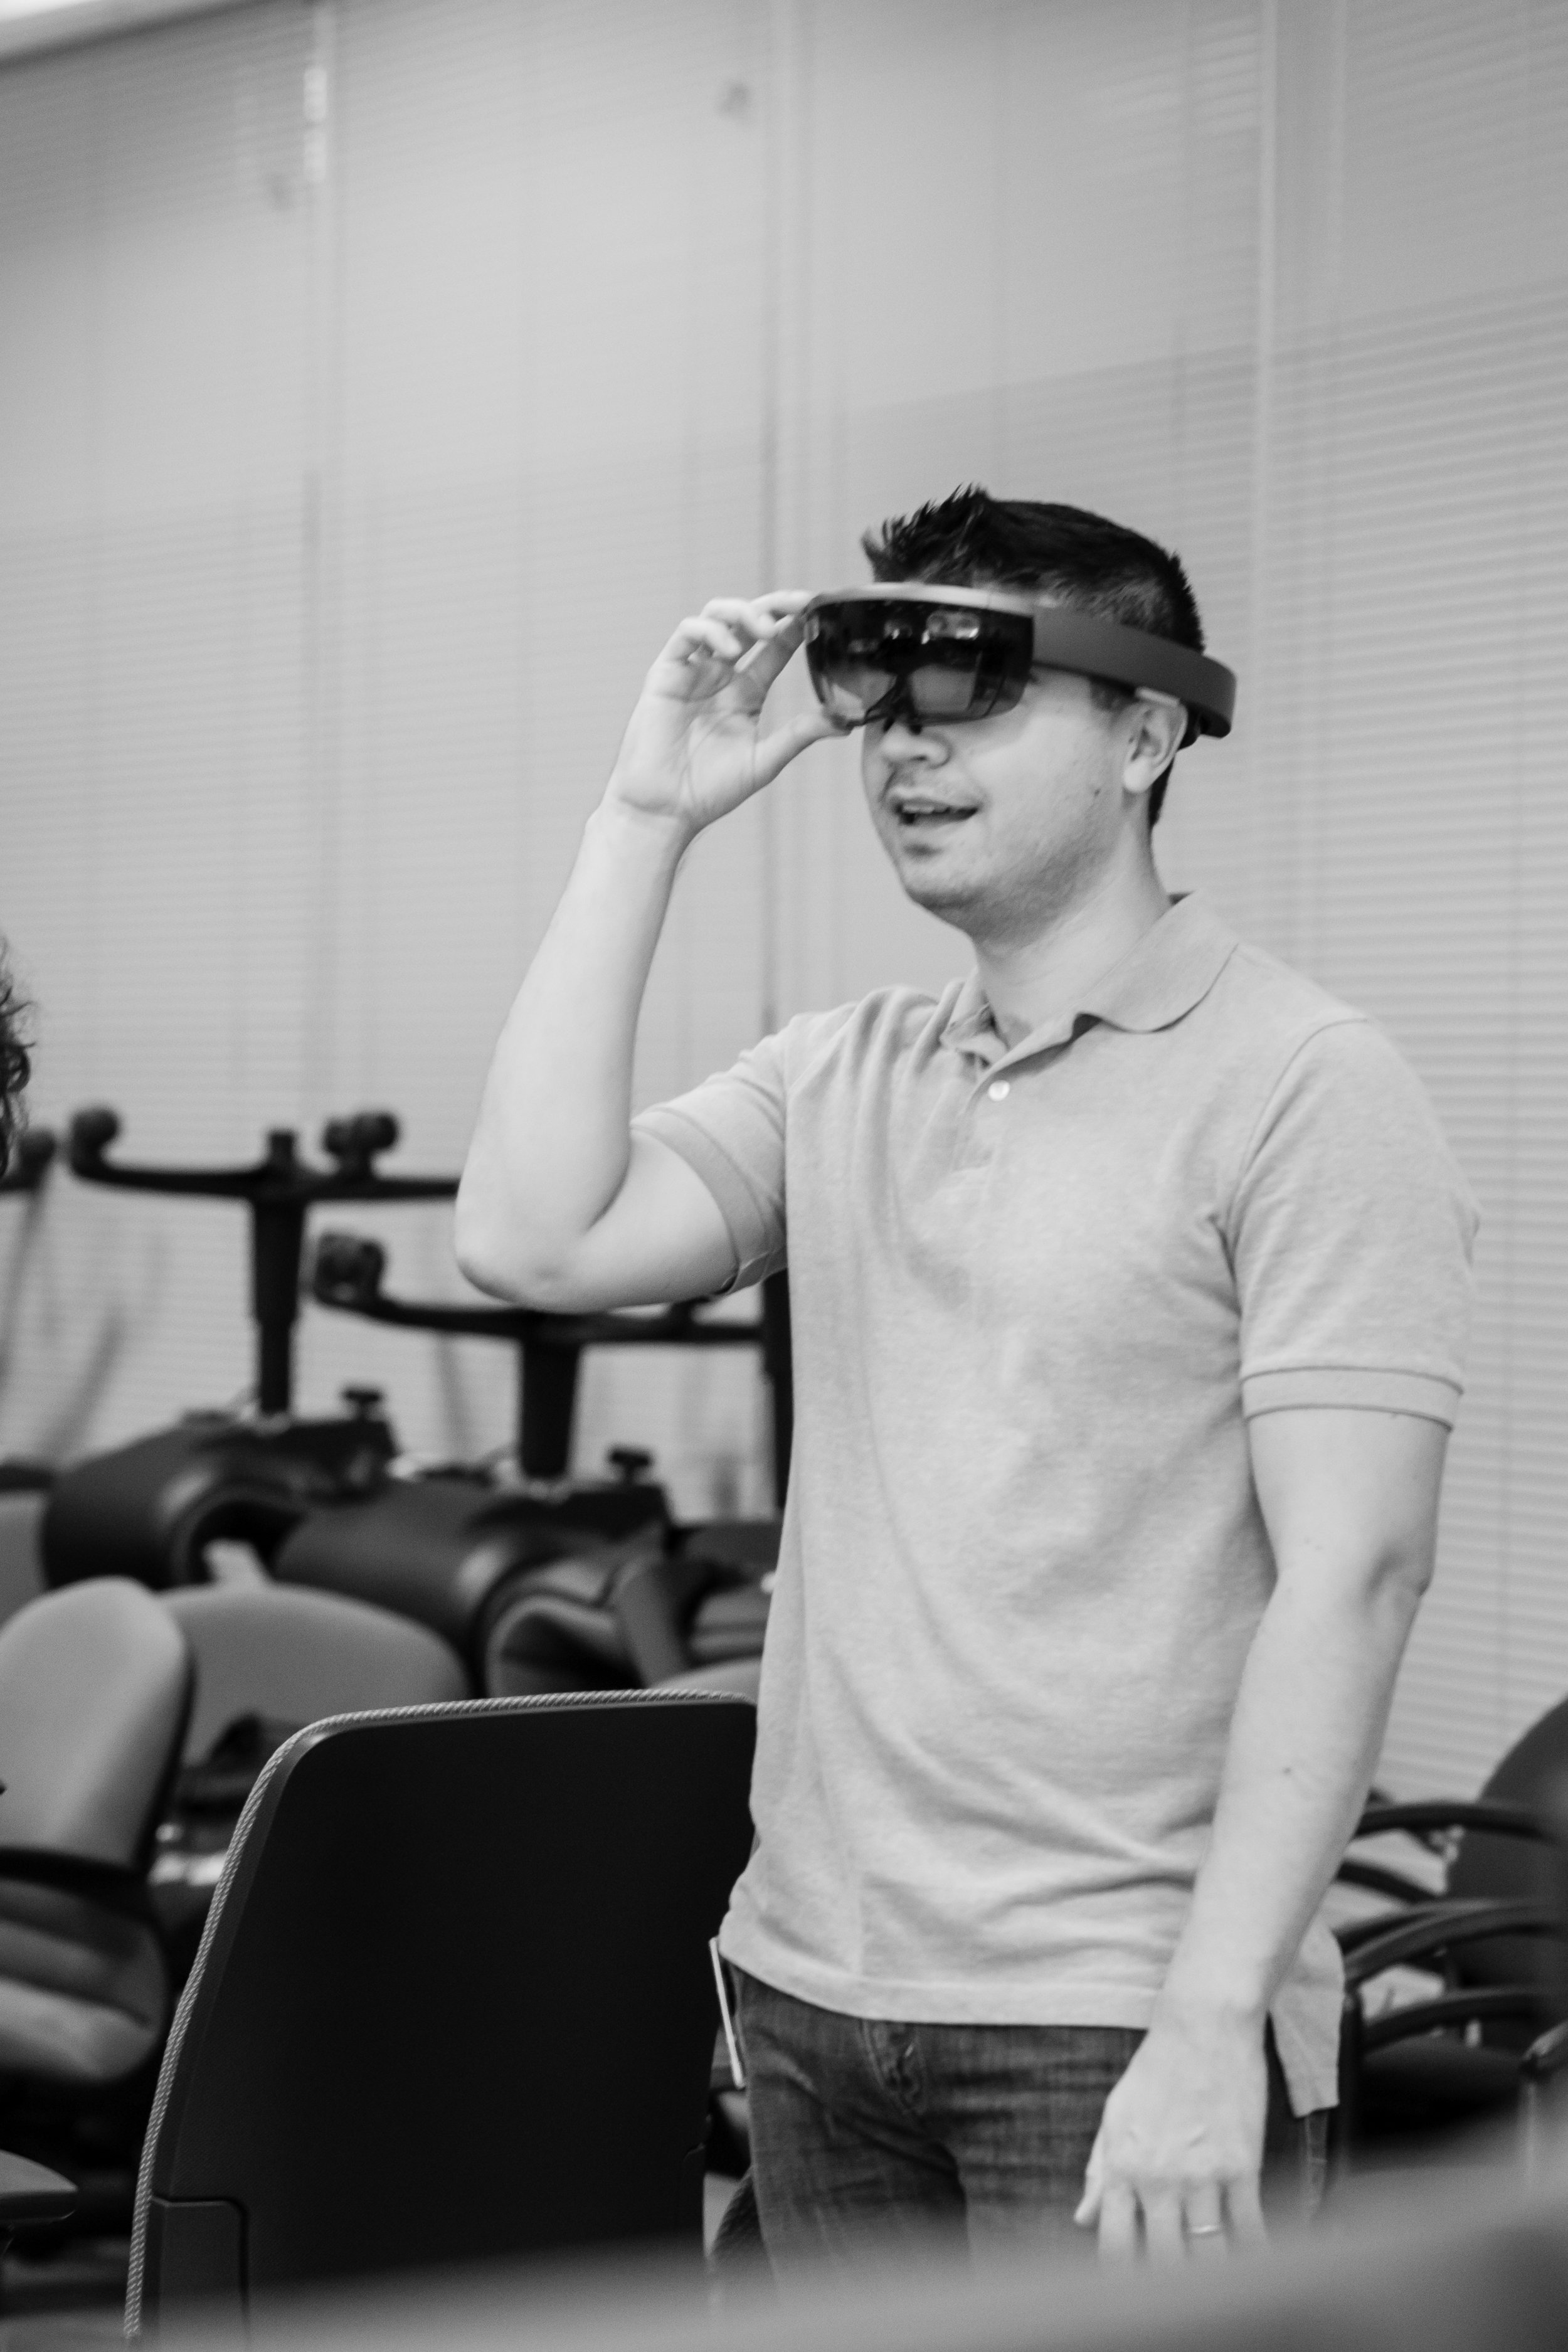 Me trying out Hololens at EMC's Innovation Lab